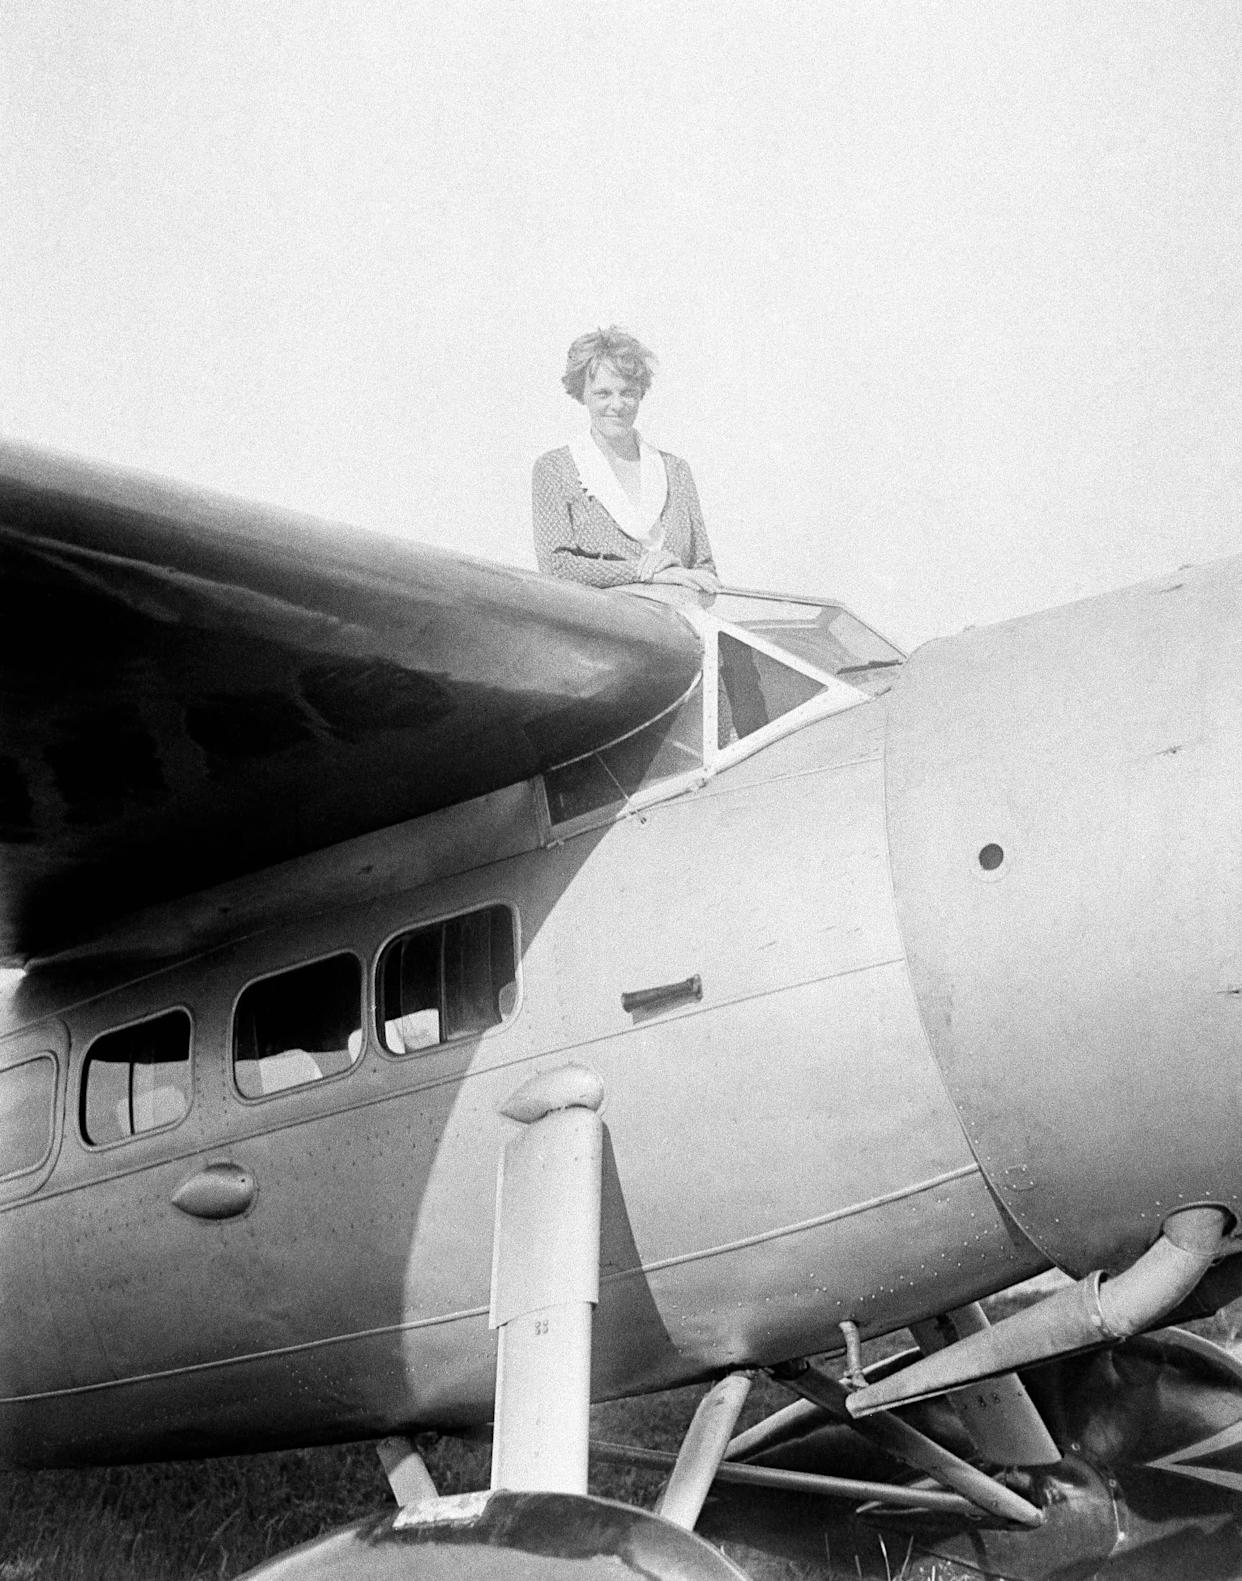 FILE - In this undated photo, Amelia Earhart, the first woman to cross the Atlantic Ocean by plane sits on top of a plane. Secretary of State Hillary Rodham Clinton is wading into one of the 20th century's most enduring mysteries: the fate of American aviator Amelia Earhart, disappeared over the South Pacific 75 years ago. Clinton is meeting March 20, 2012, with historians and scientists from The International Group for Historic Aircraft Recovery, which will launch a new search in June for the wreckage of Earhart's plane off the remote island of Nikumaroro. (AP Photo)